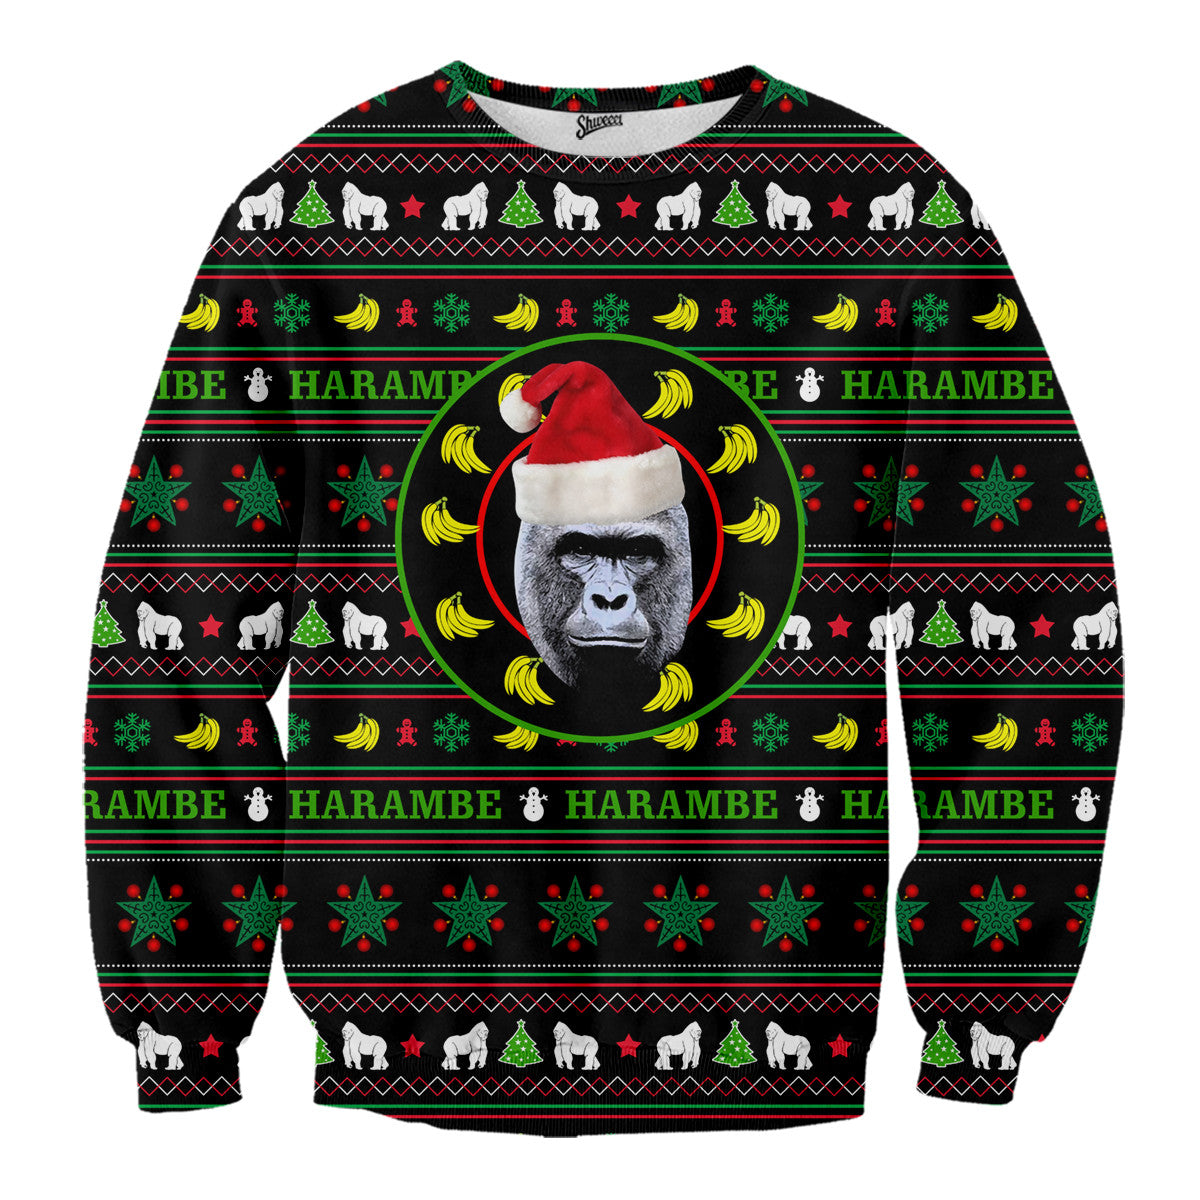 Harambe Christmas Sweater - Shweeet